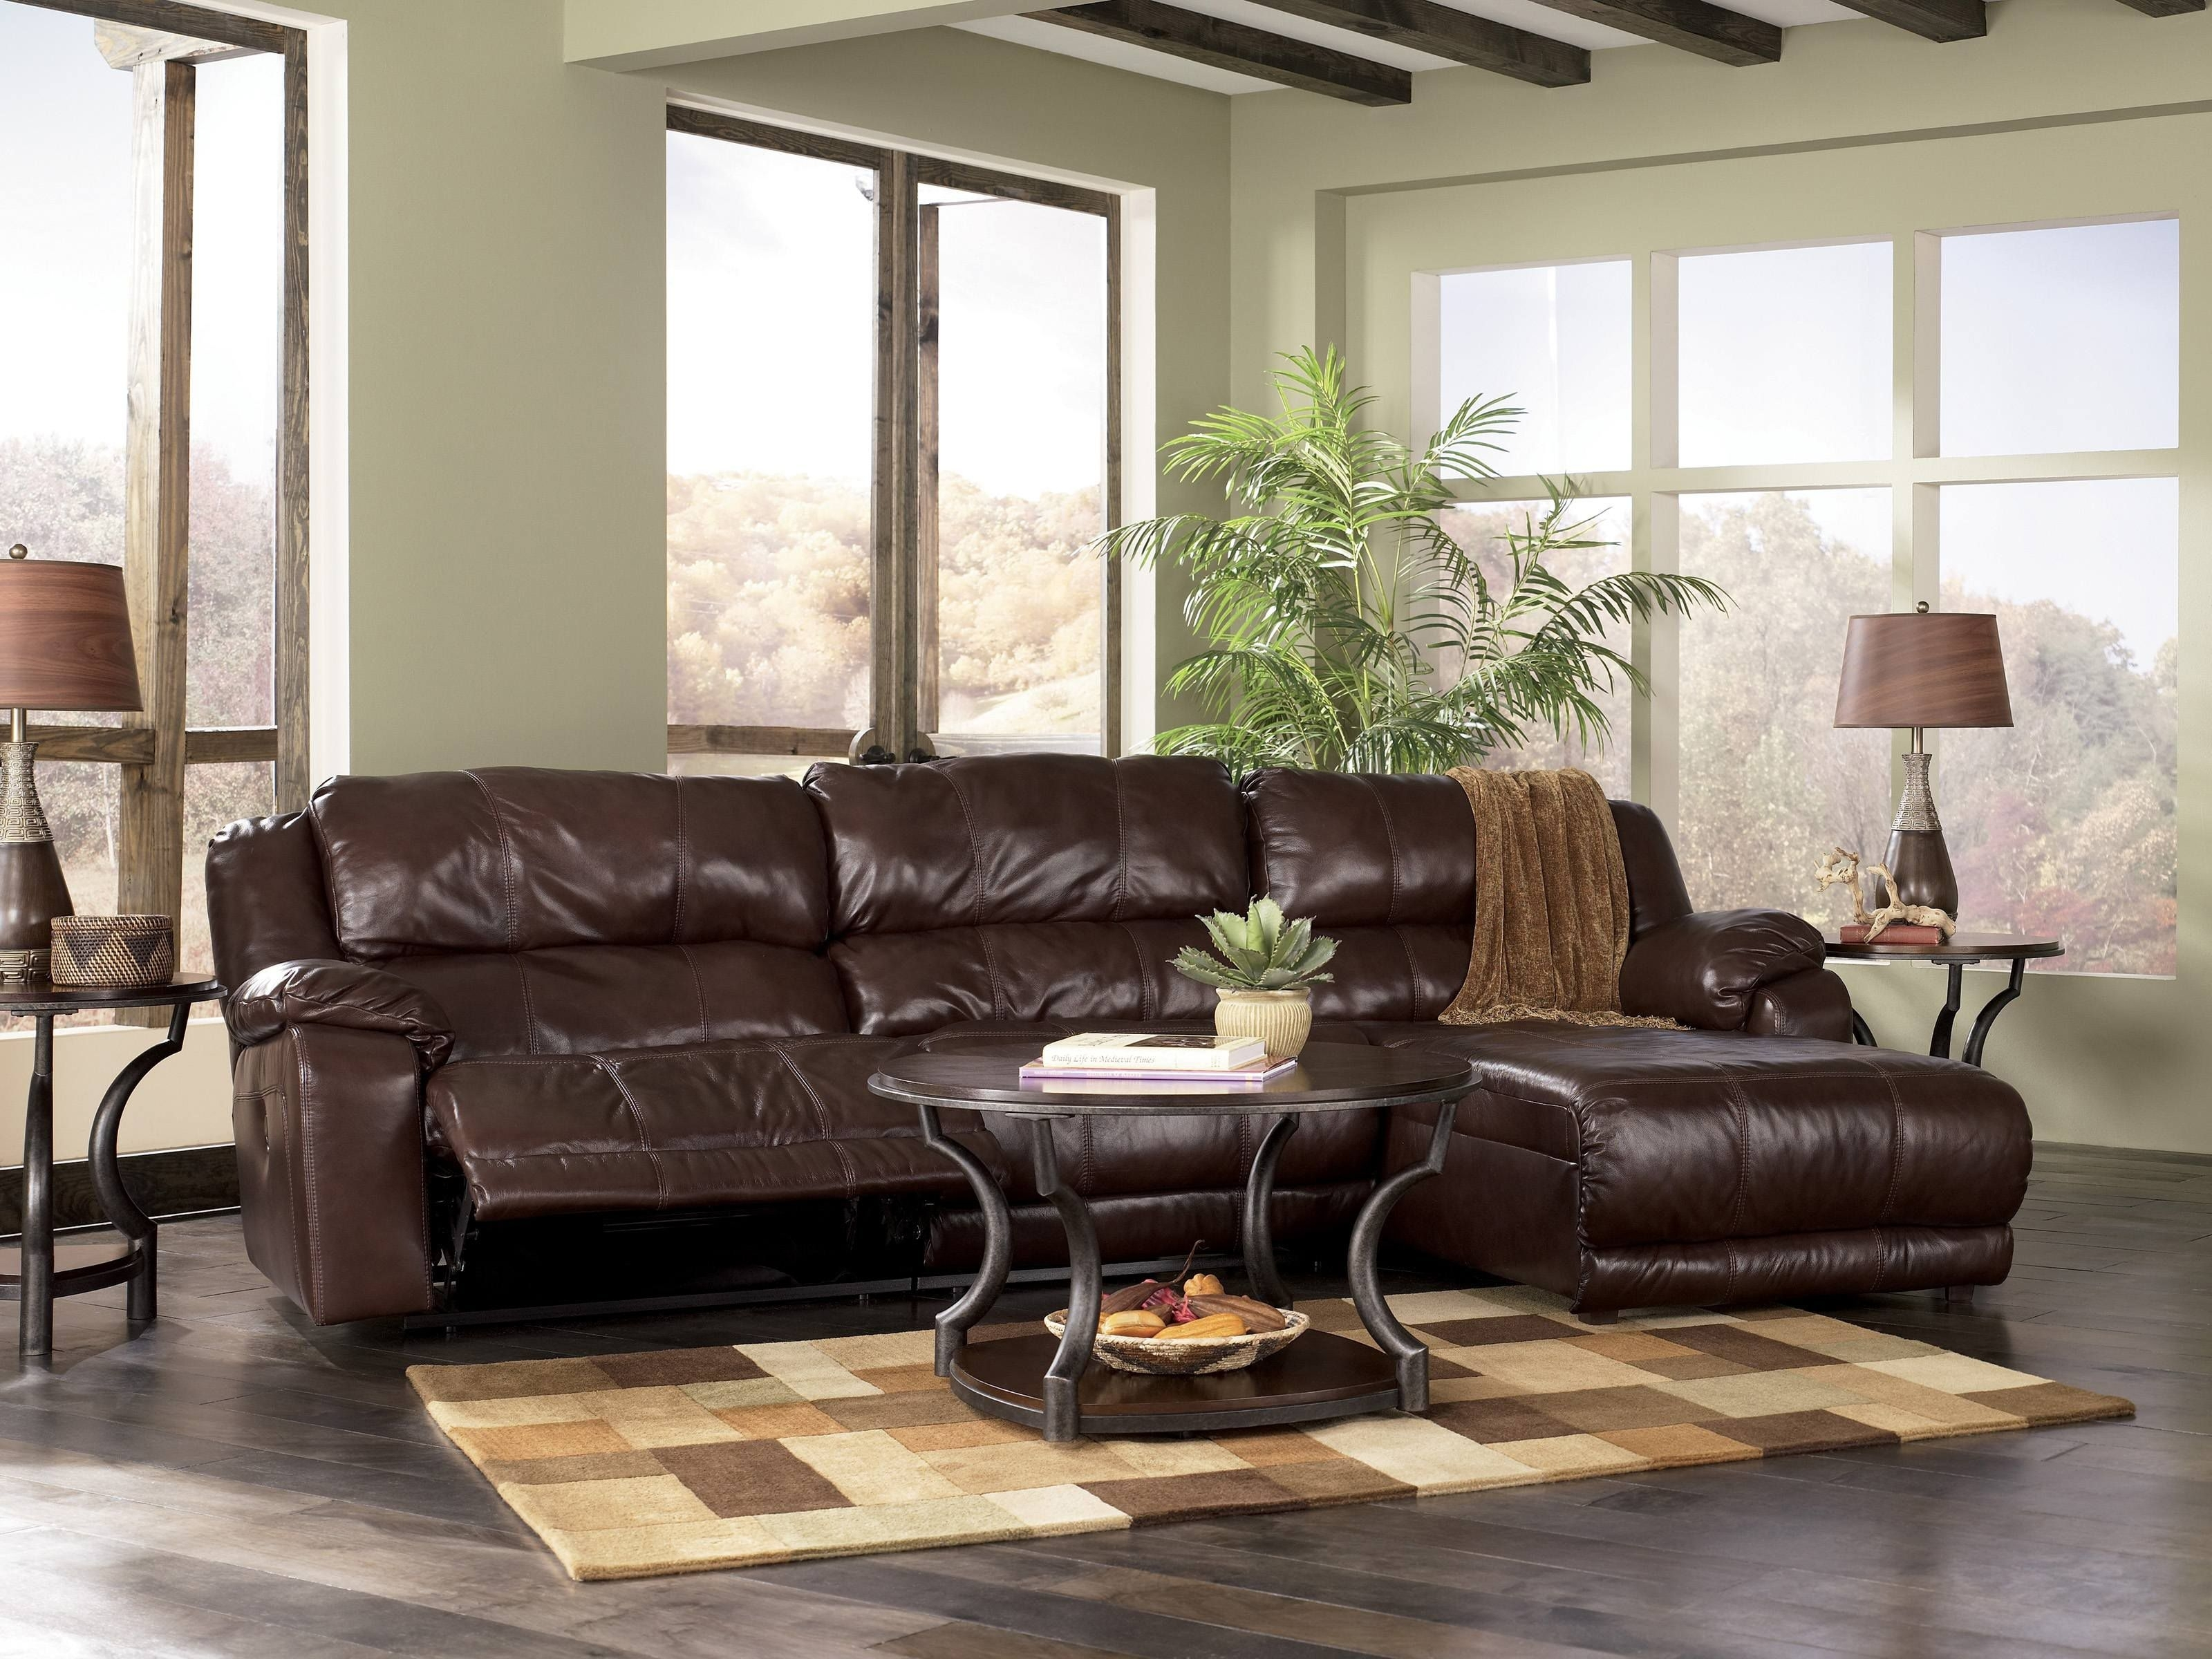 Sectional Sofas With Recliners | Johnson Leather Sofa With Recliner Regarding Johnson City Tn Sectional Sofas (View 5 of 10)